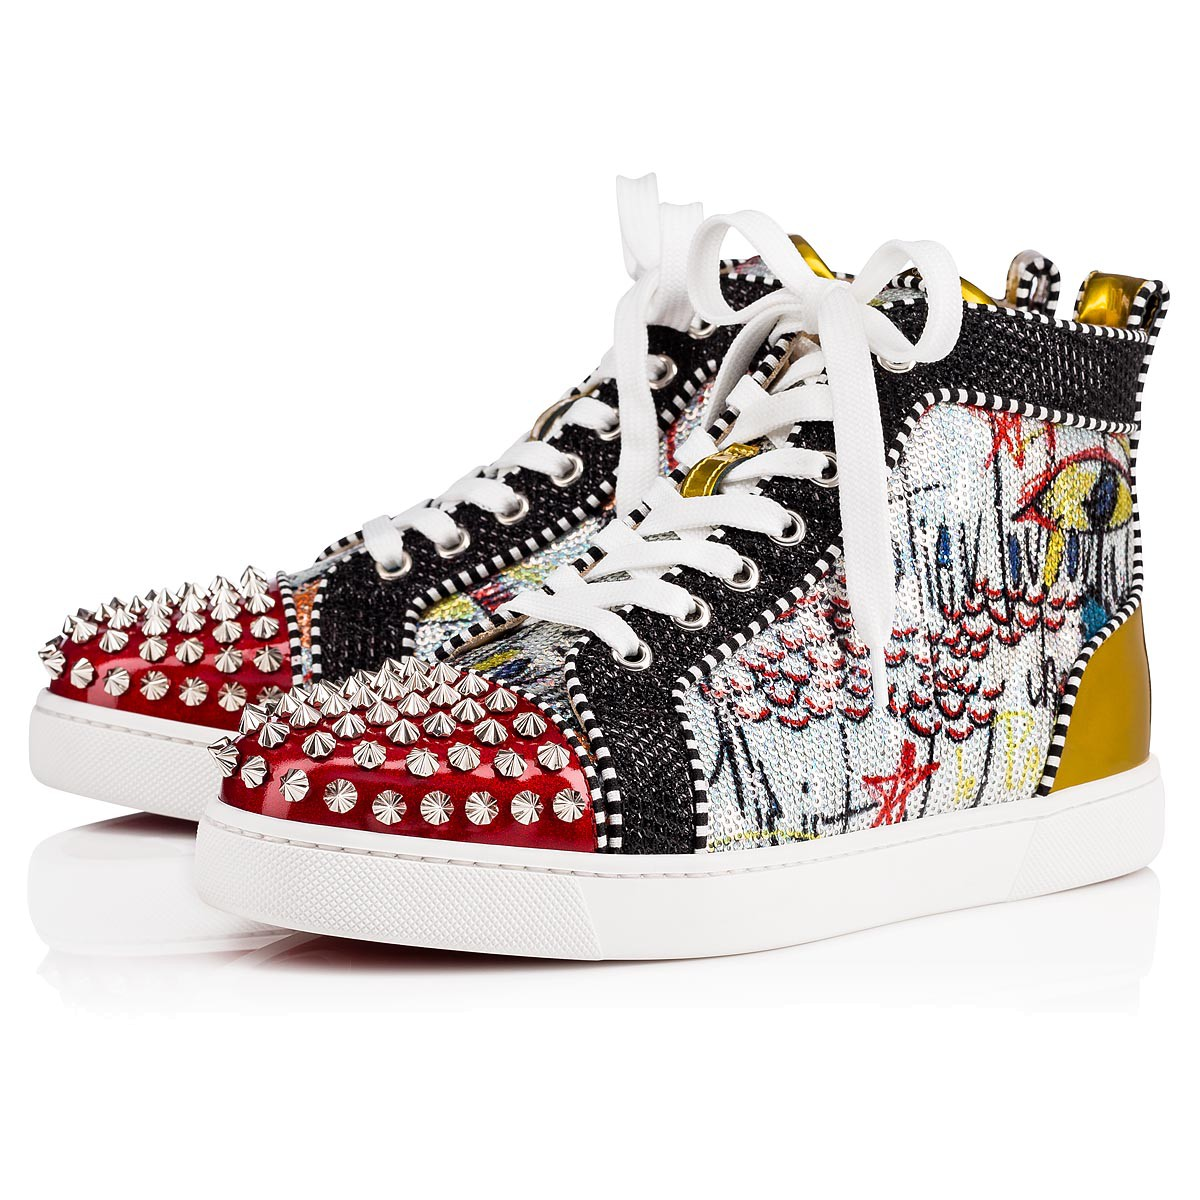 new product 71871 b49dc Christian Louboutin High Top Silver Spikes Men Shoes Lou Spikes Woman Flat